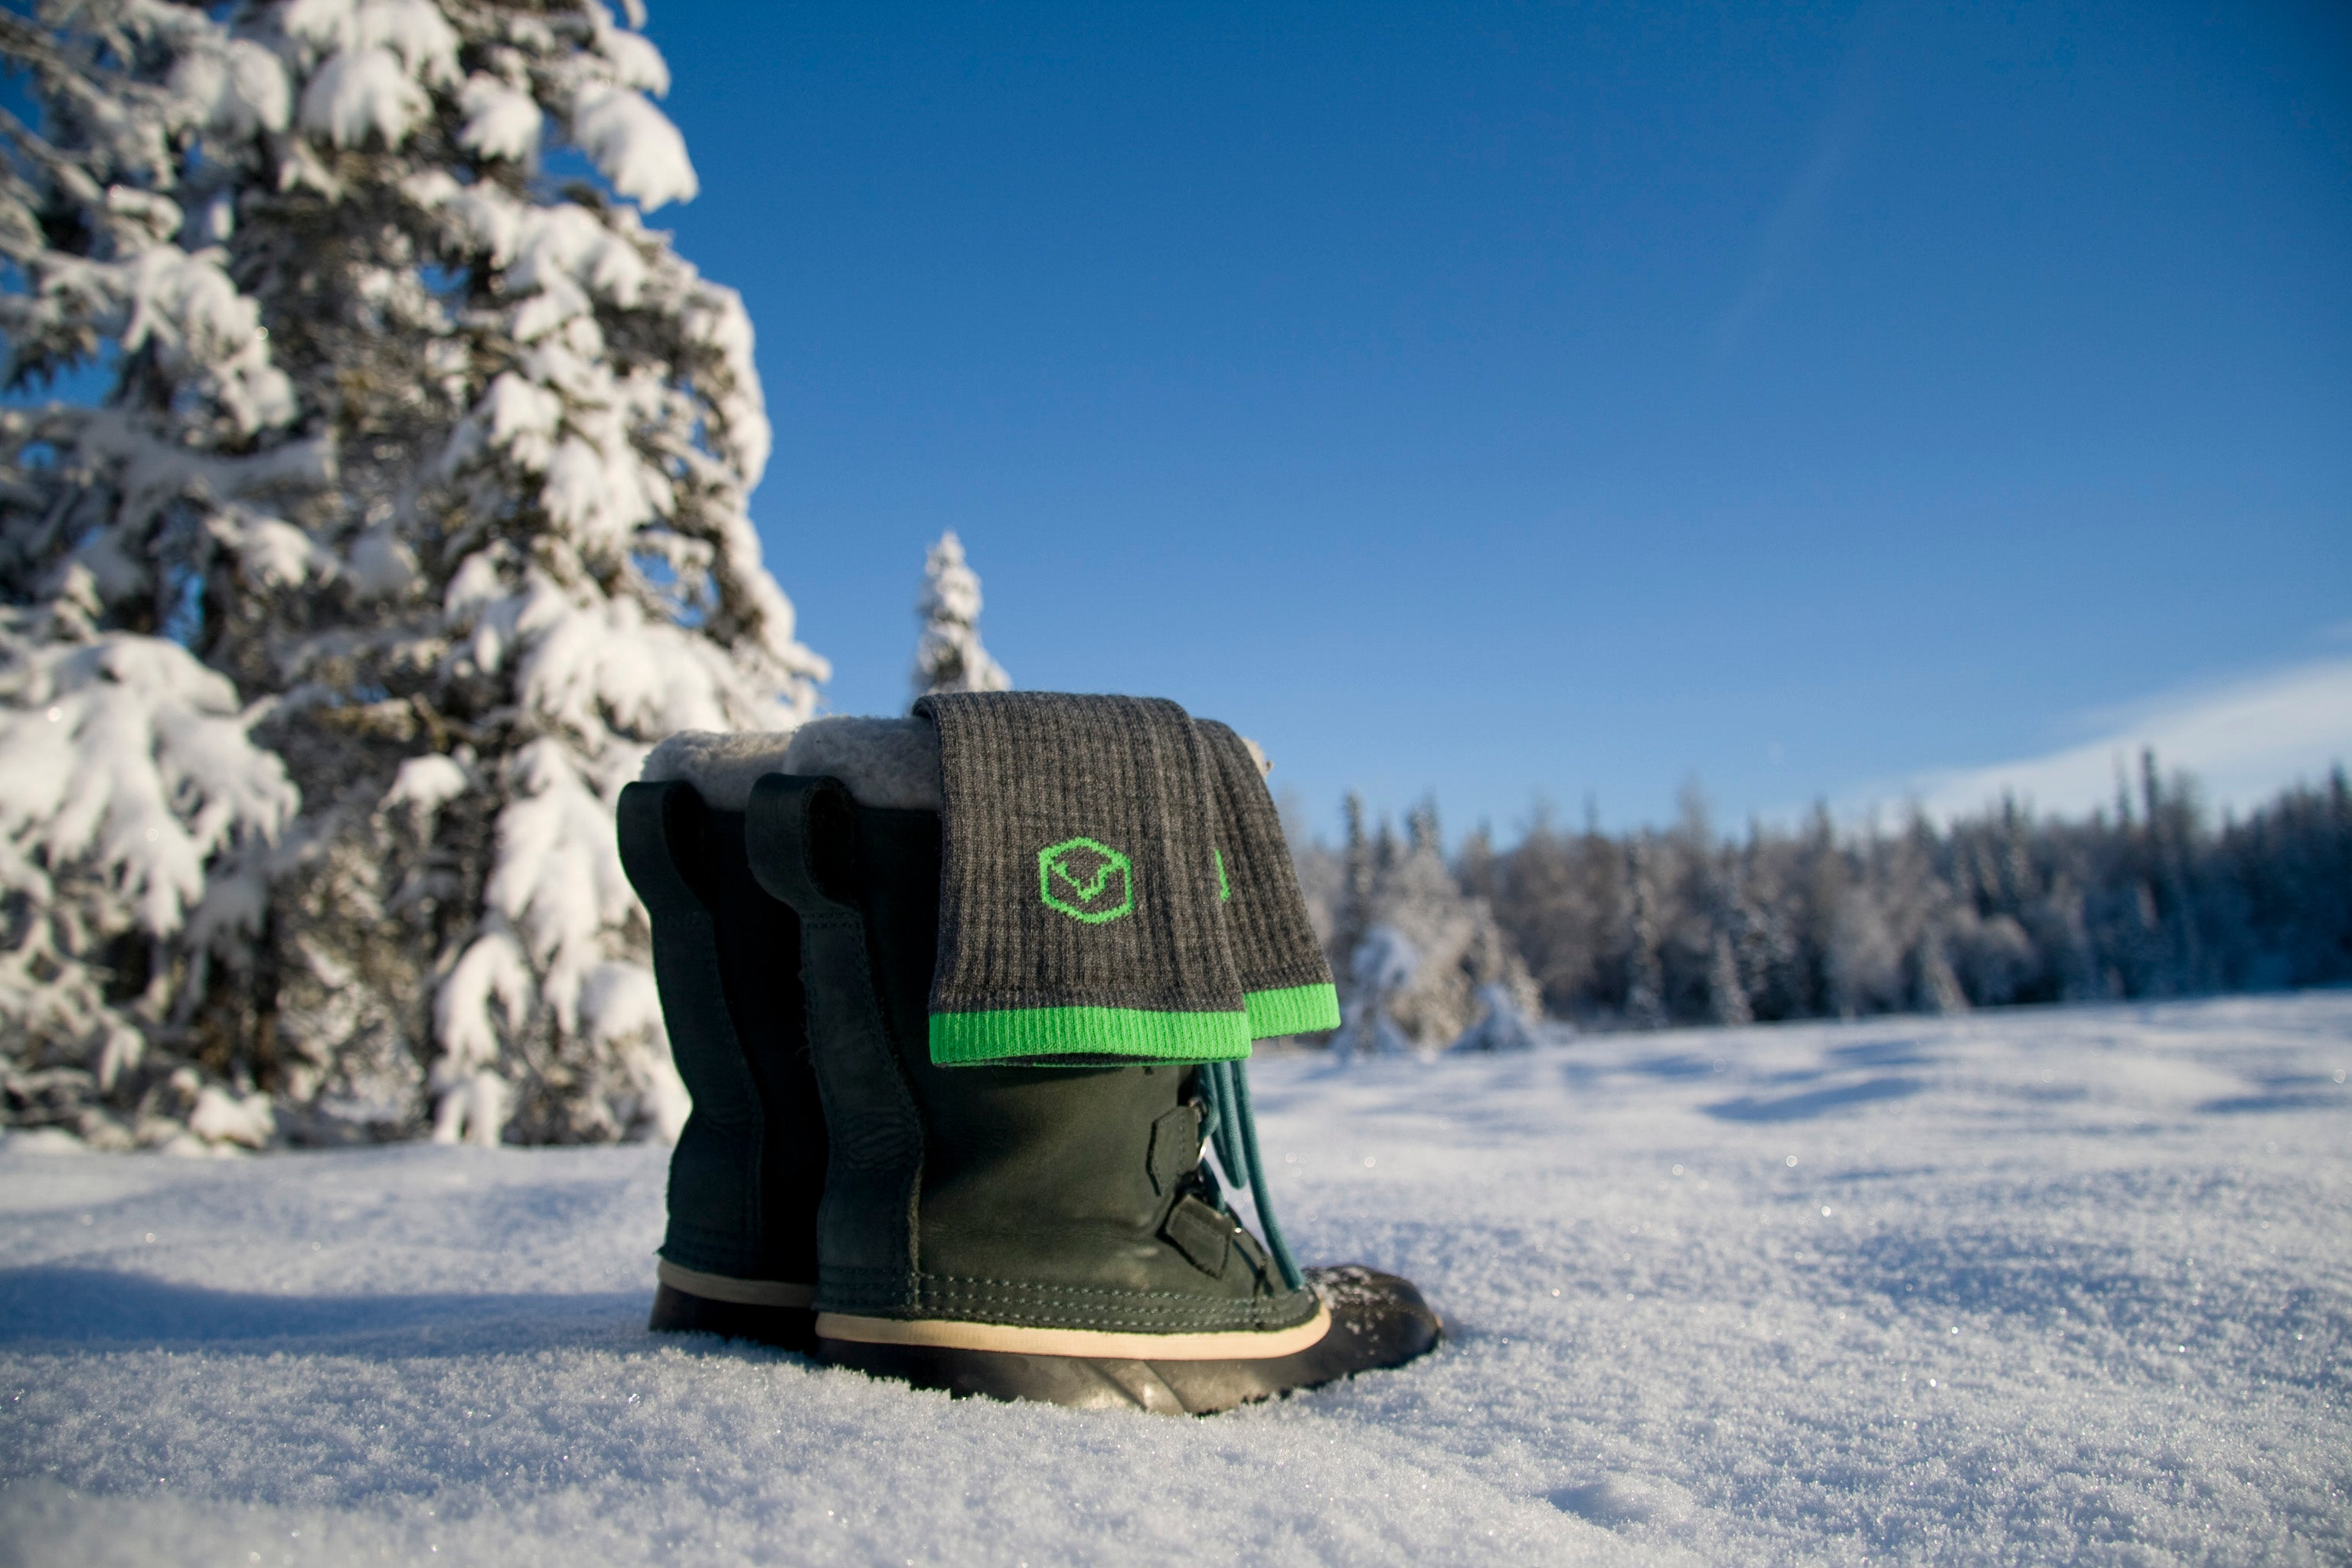 A fresh pair of CloudLine merino wool hiking socks ready for adventure